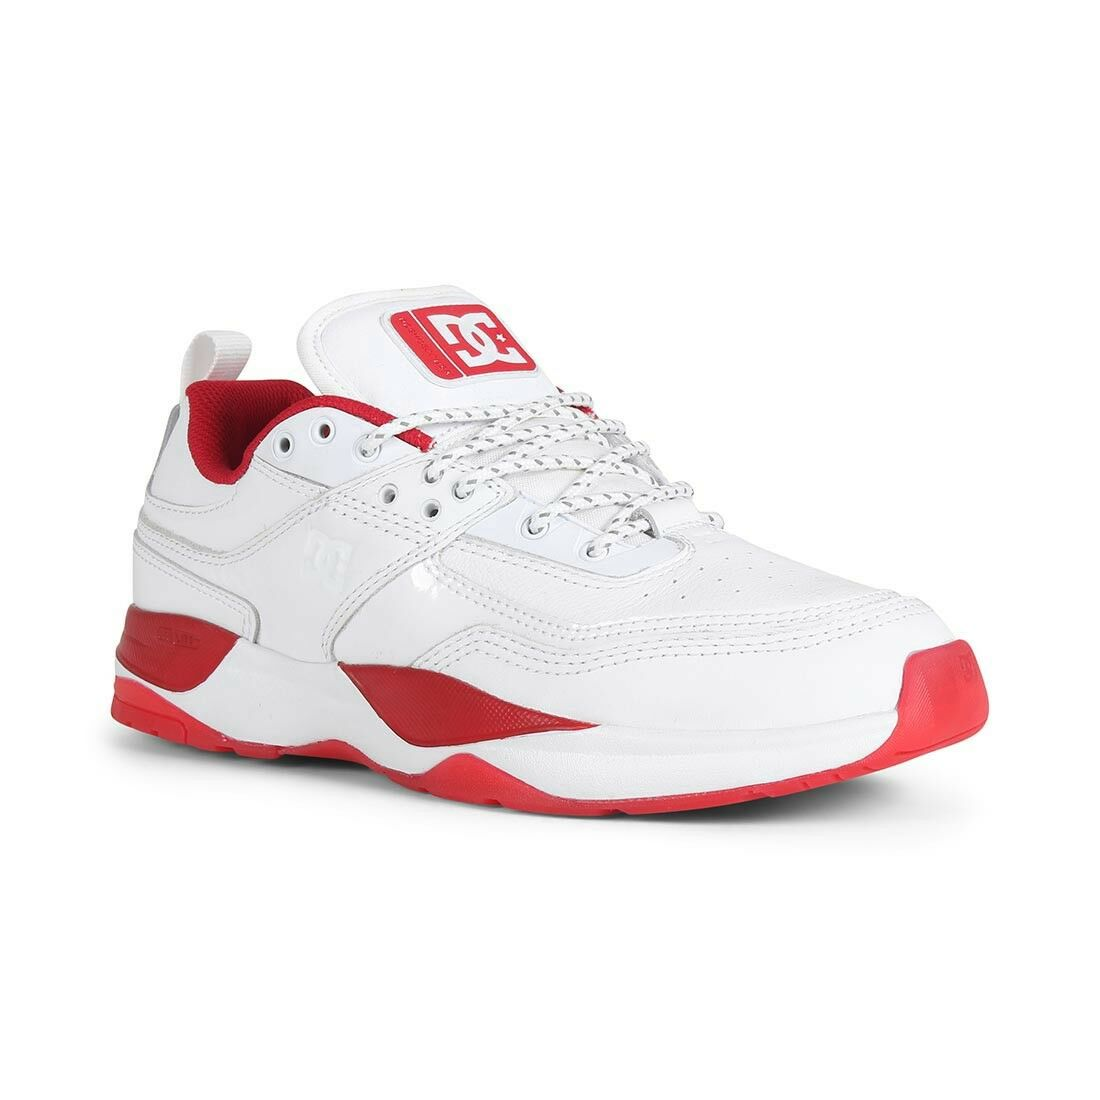 DC shoes E Tribeka S JS - White    Red  save on clearance